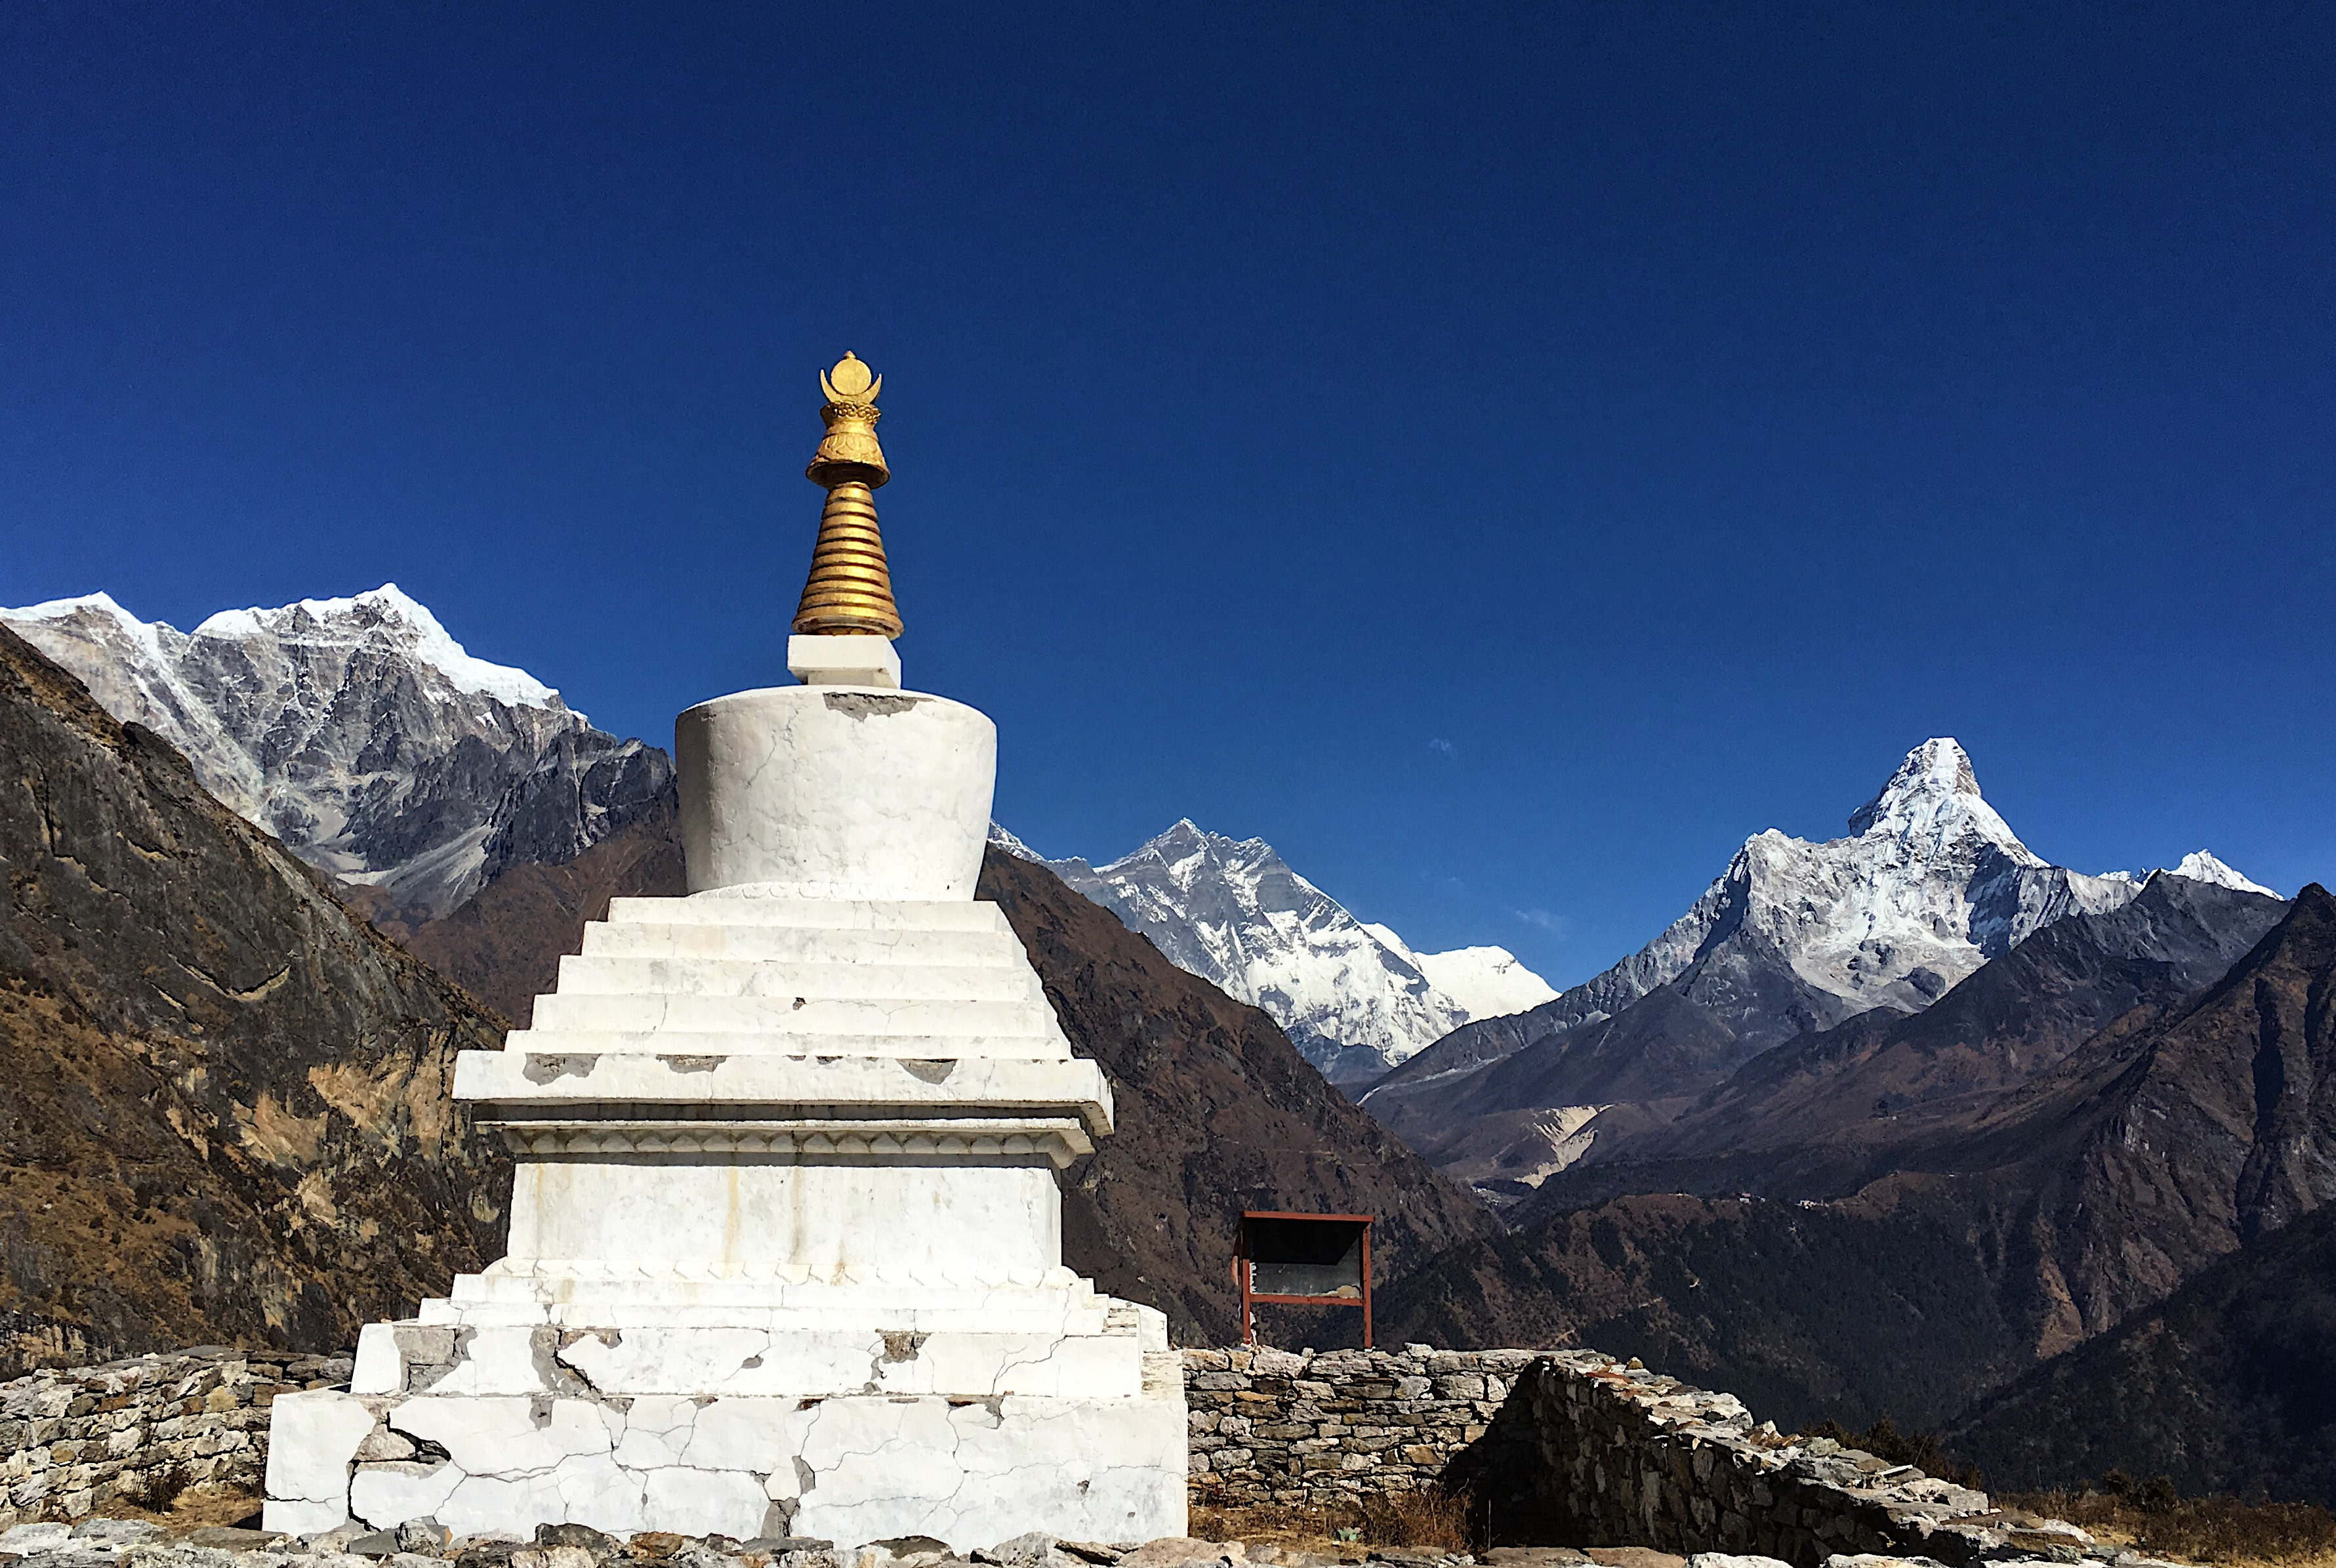 A nice side trip out of Namche is to hike to the Everest View Hotel for lunch. I found the hotel to be over priced, so I kept hiking and found this incredible stupa dedicated to Sir Edmund Hillary. The view of Everest came with it for free!